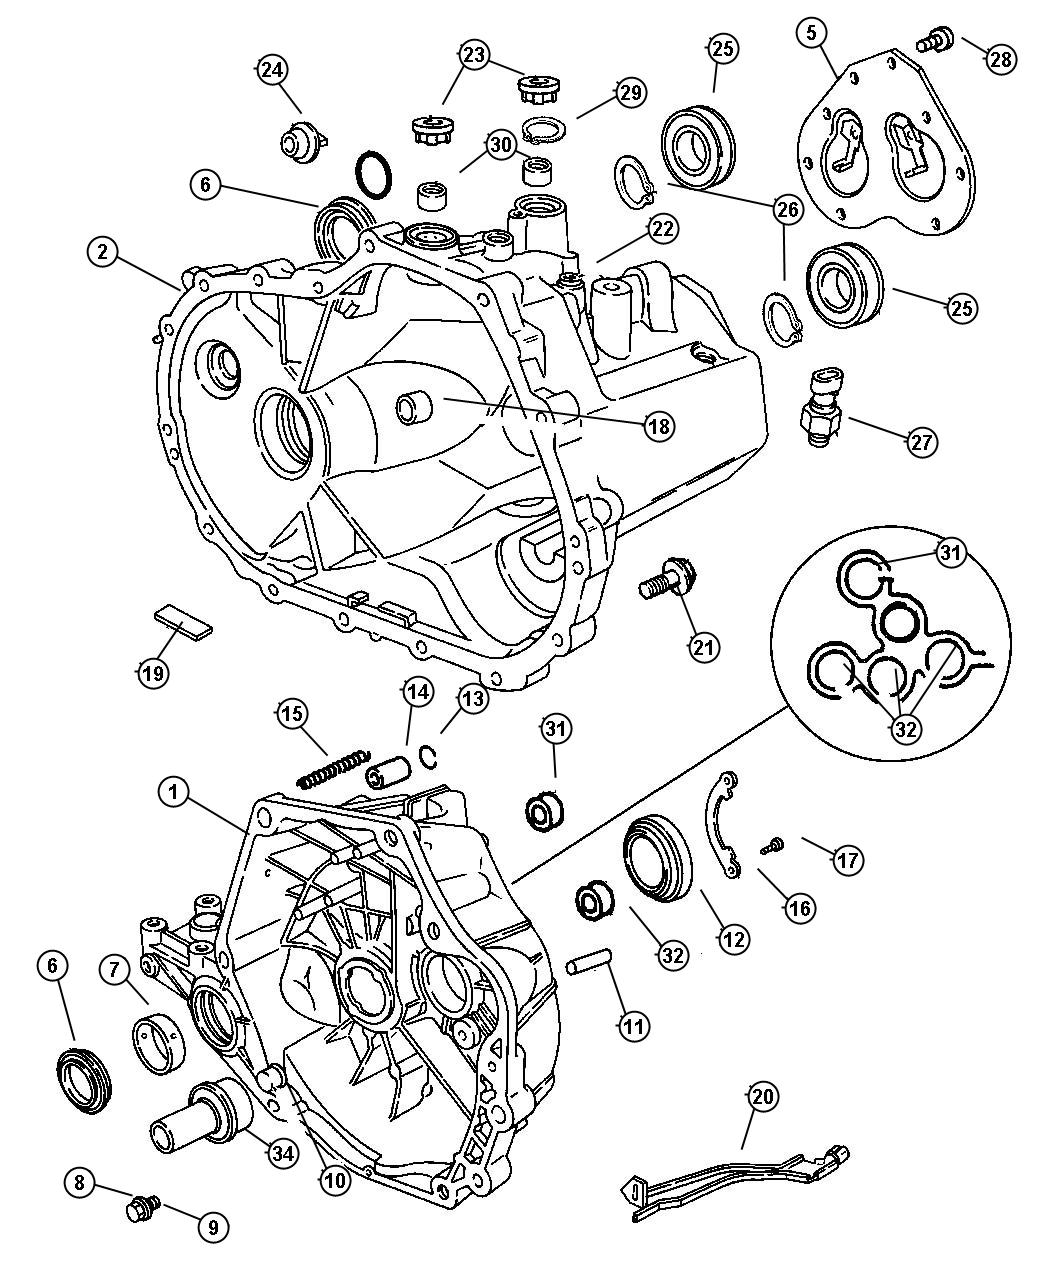 2011 ford fusion serpentine belt diagram ford wiring